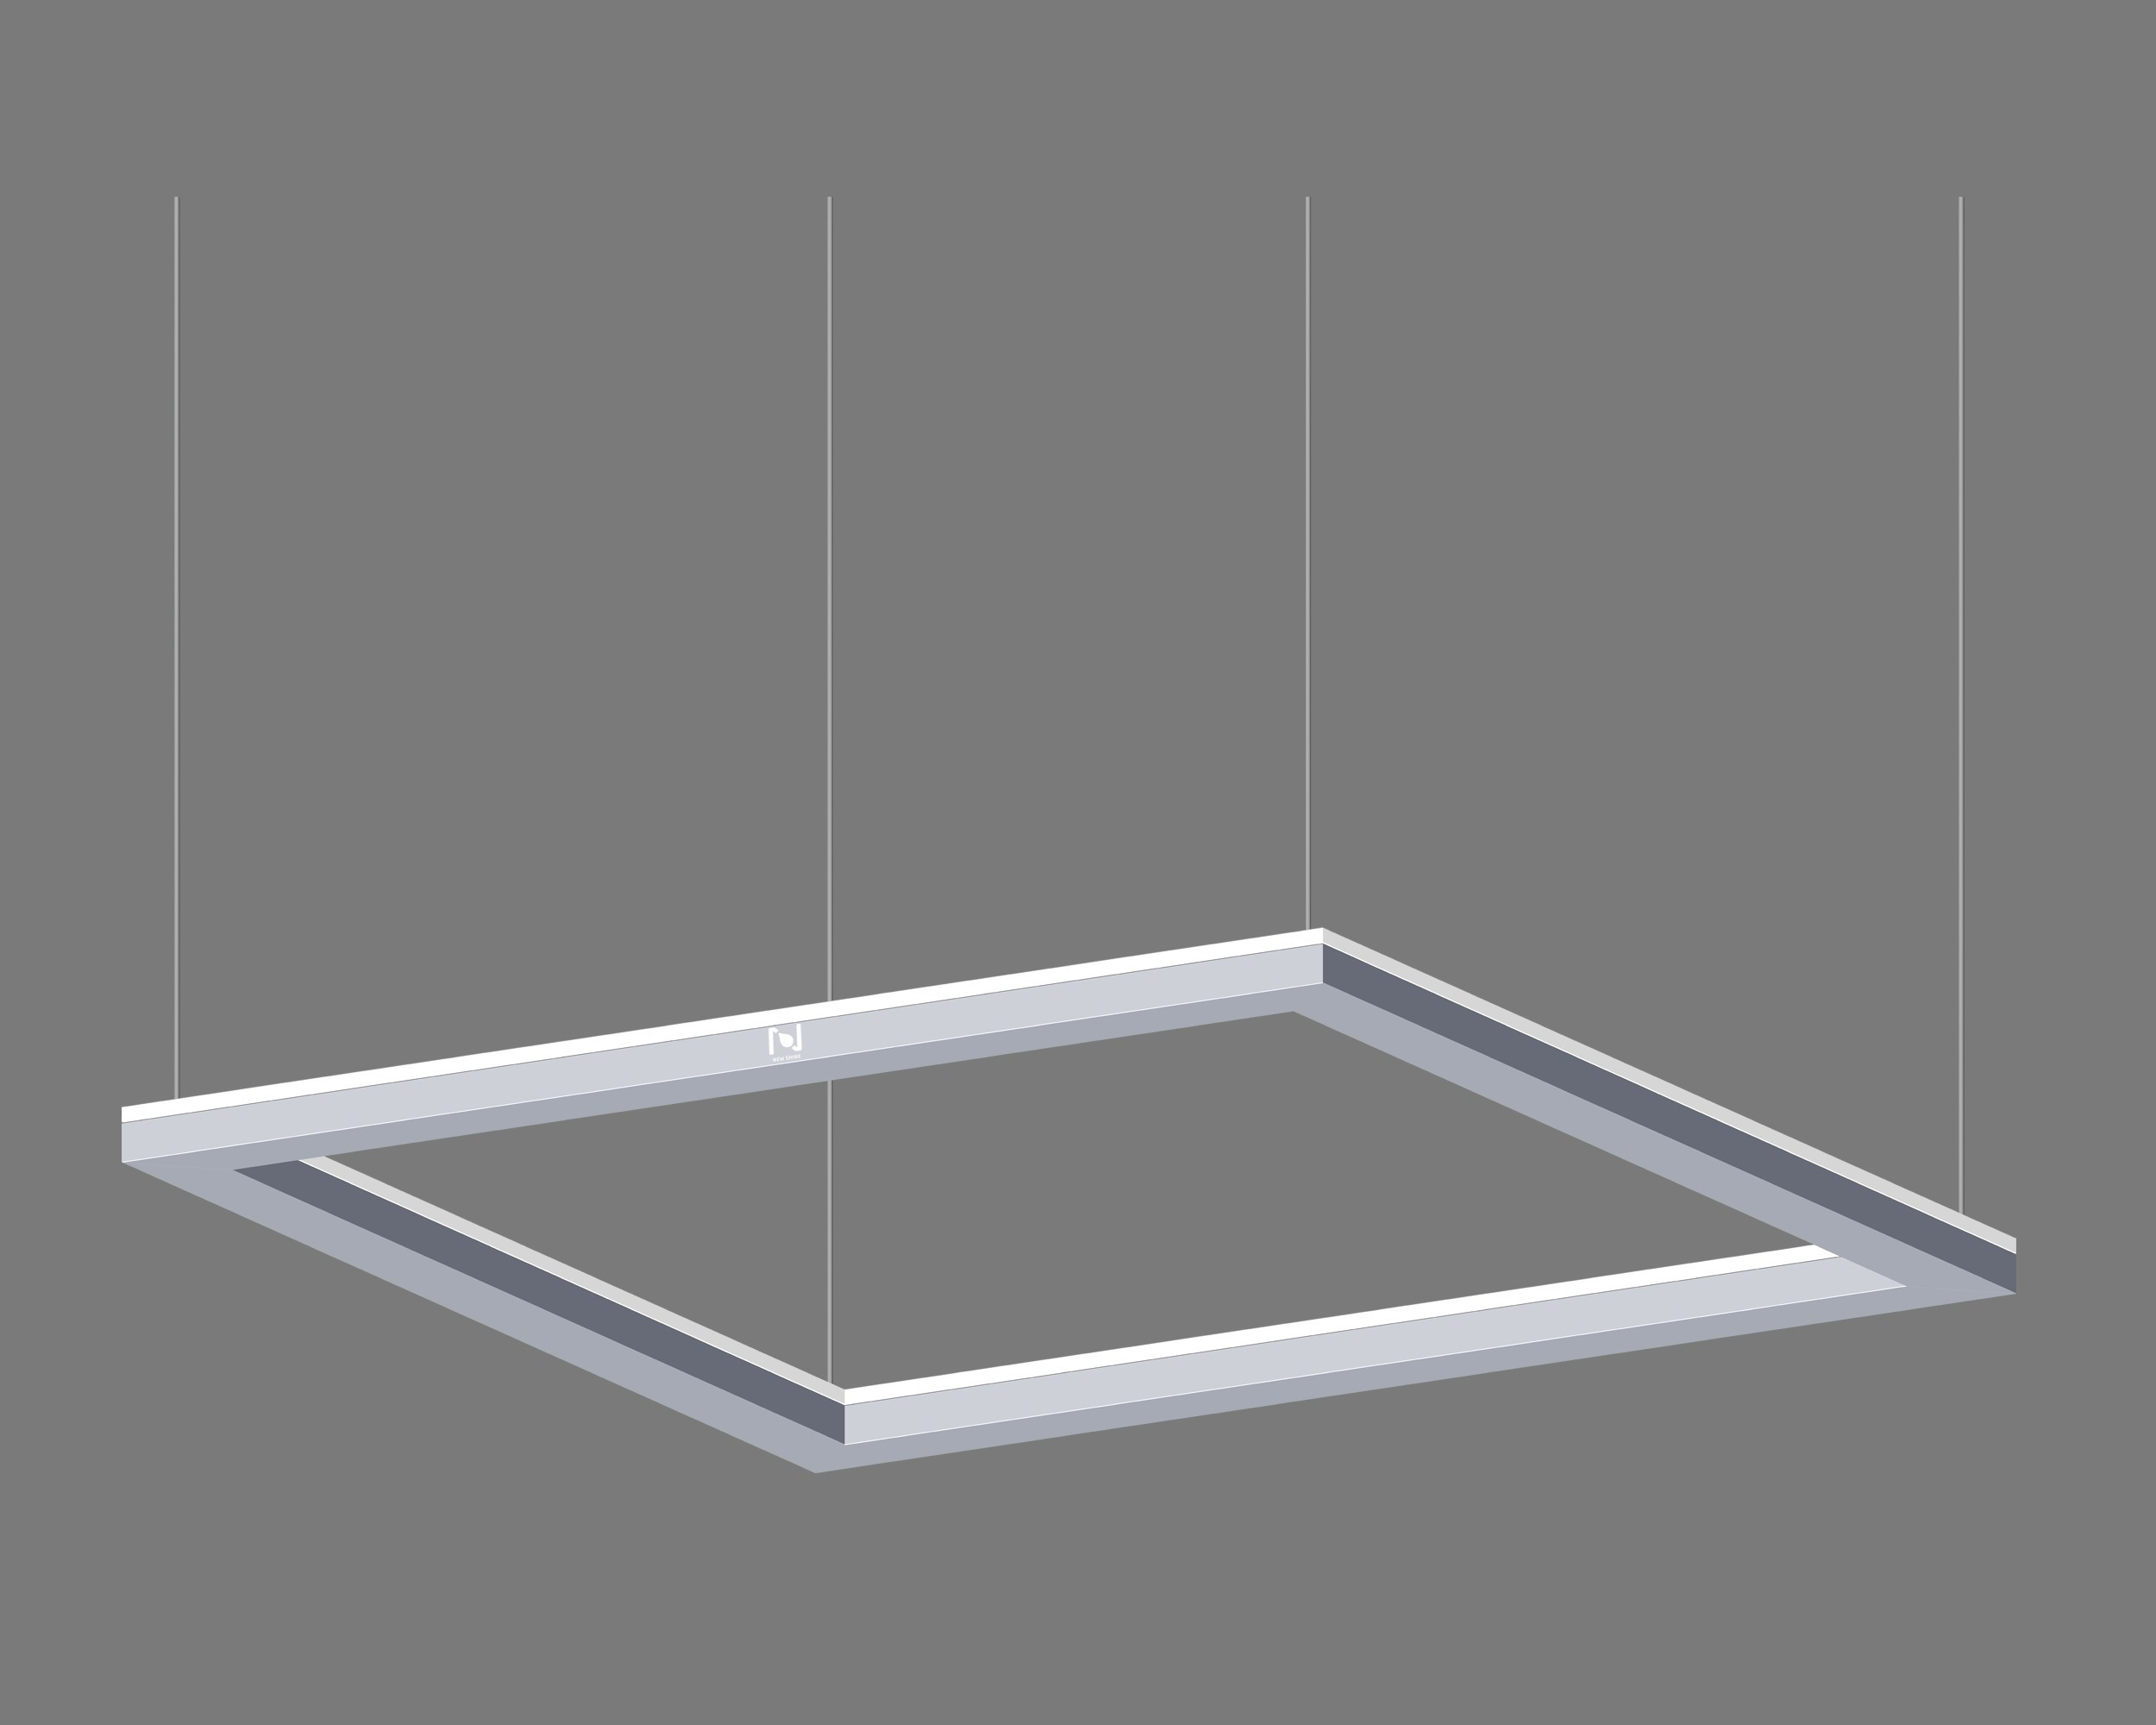 LED Square Light direct lighting fixtures architectural lighting LL0195S-40W-D